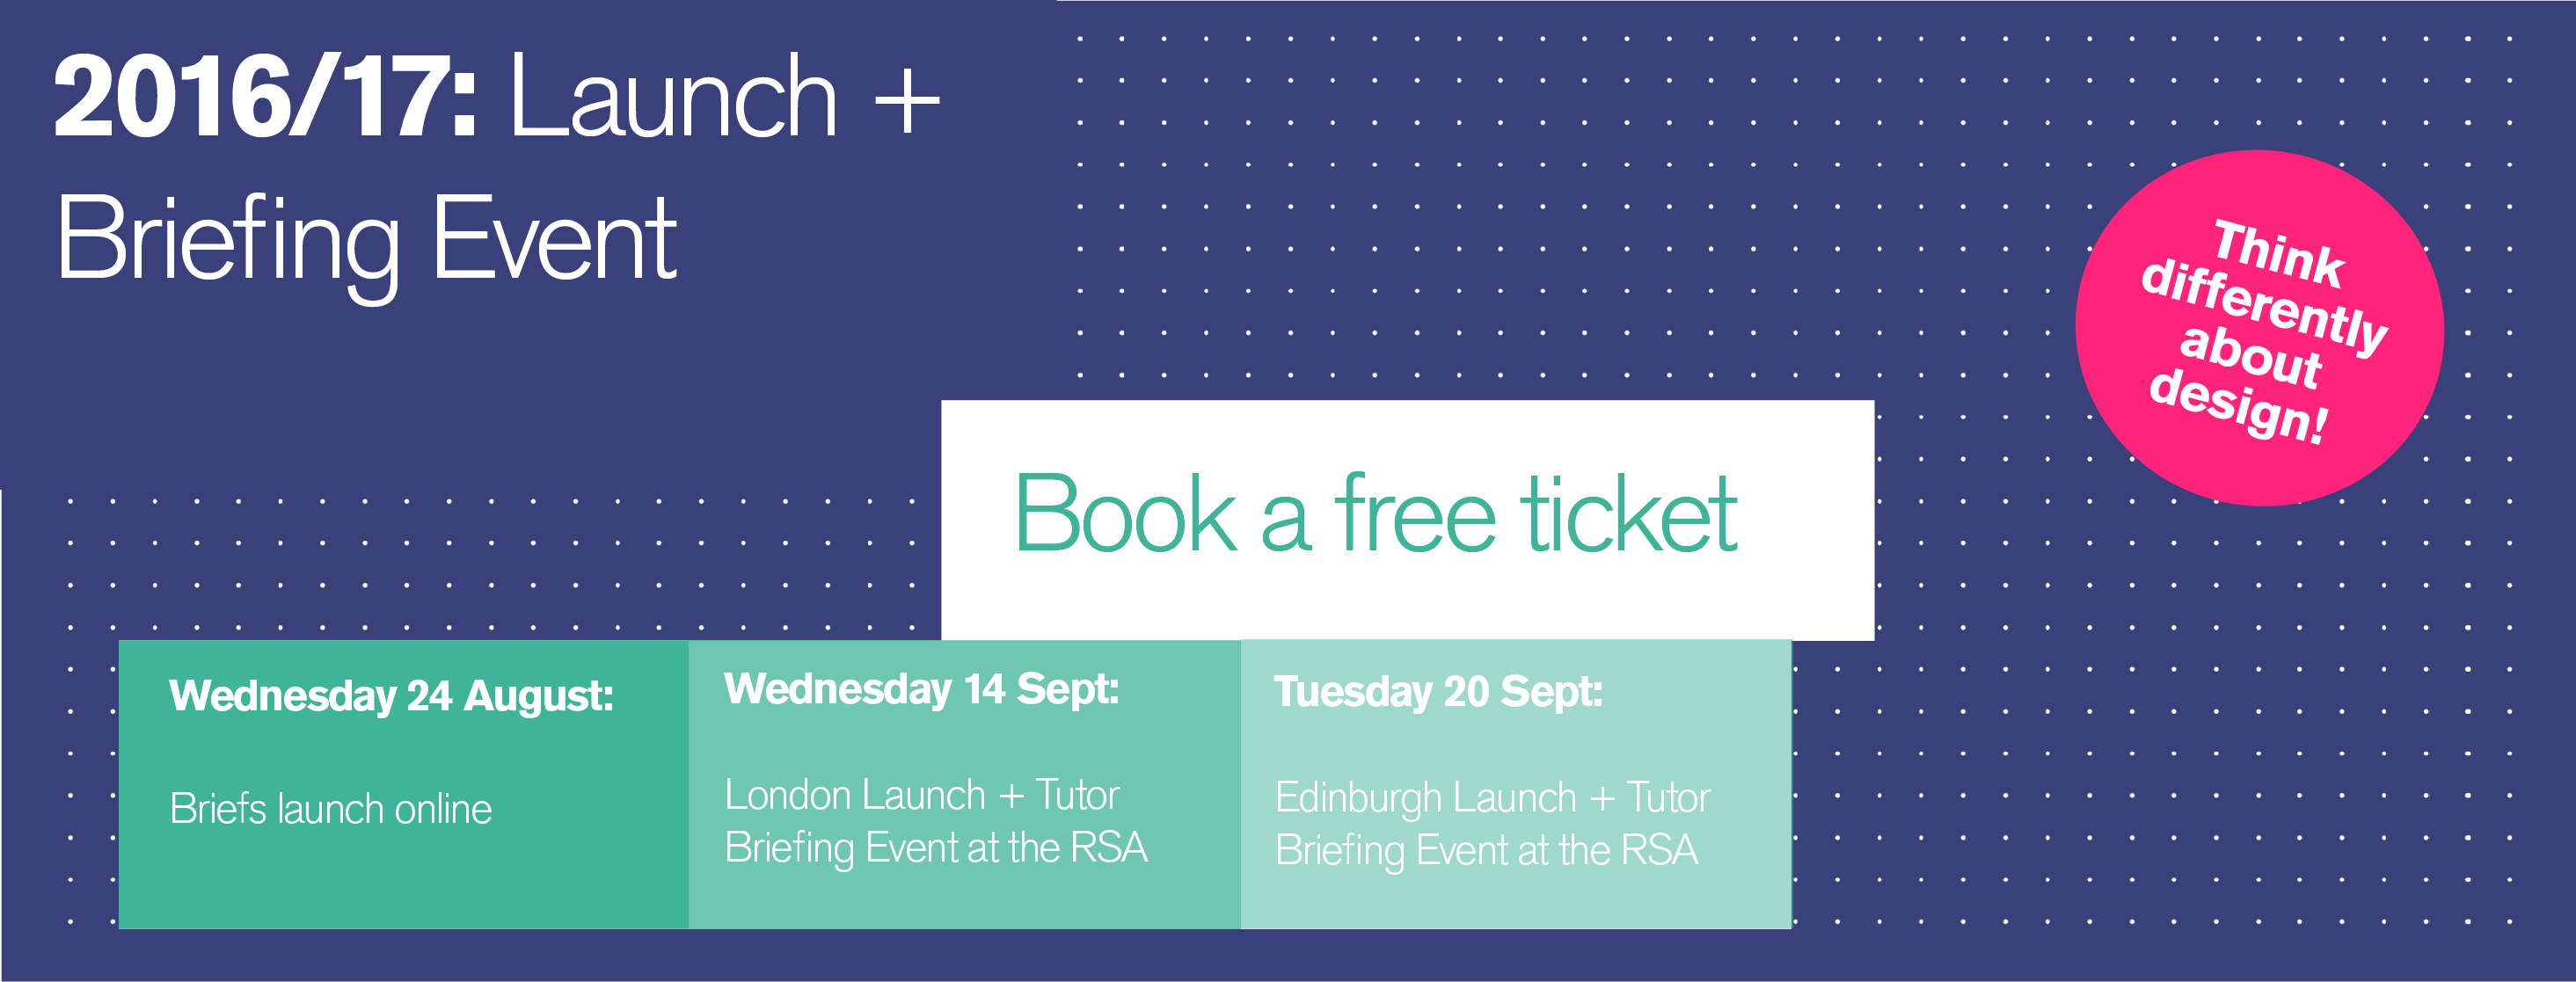 2016-17 Launch + Tutor Briefing Events in London and Scotland